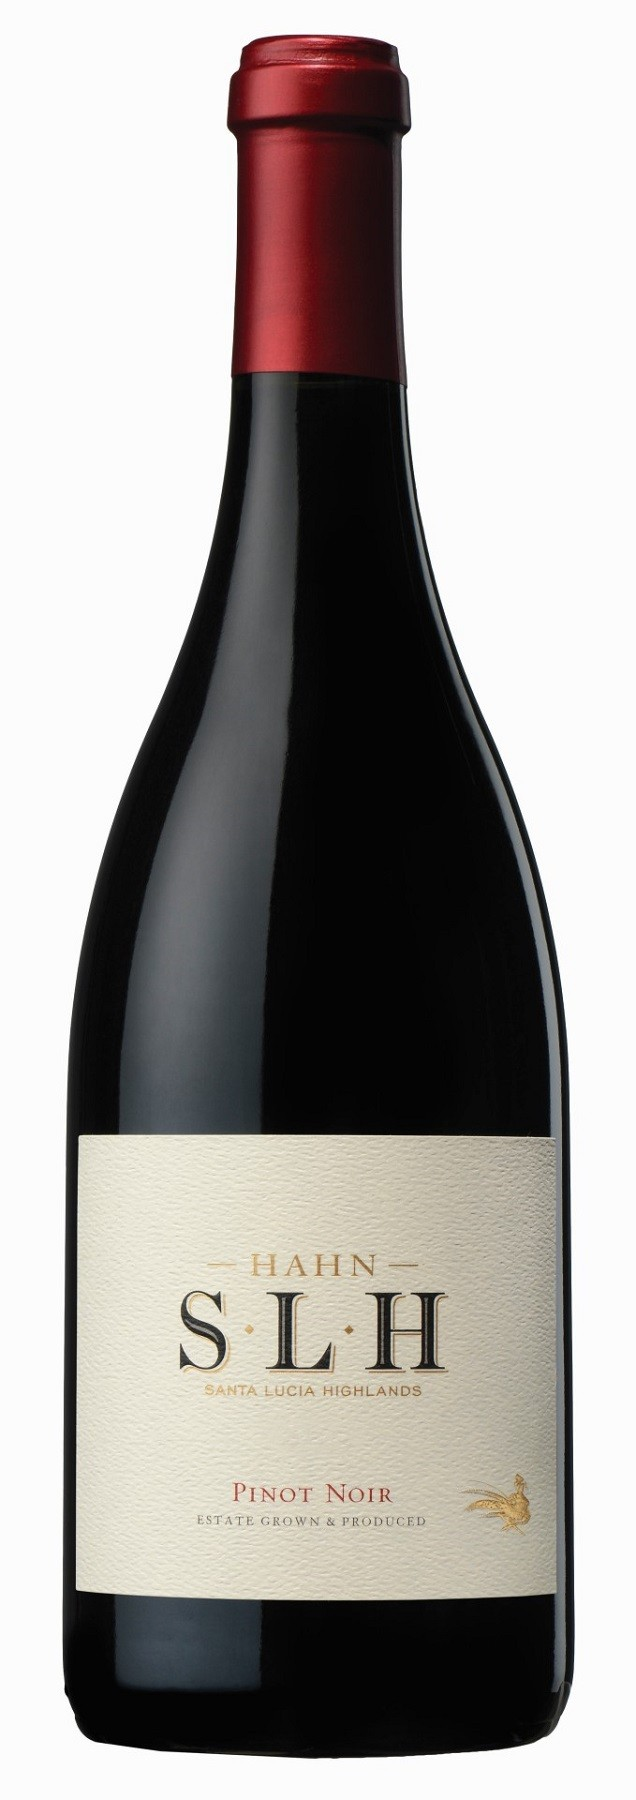 Hahn Family Wines 'SLH' Pinot Noir, Santa Lucia Highlands 2014